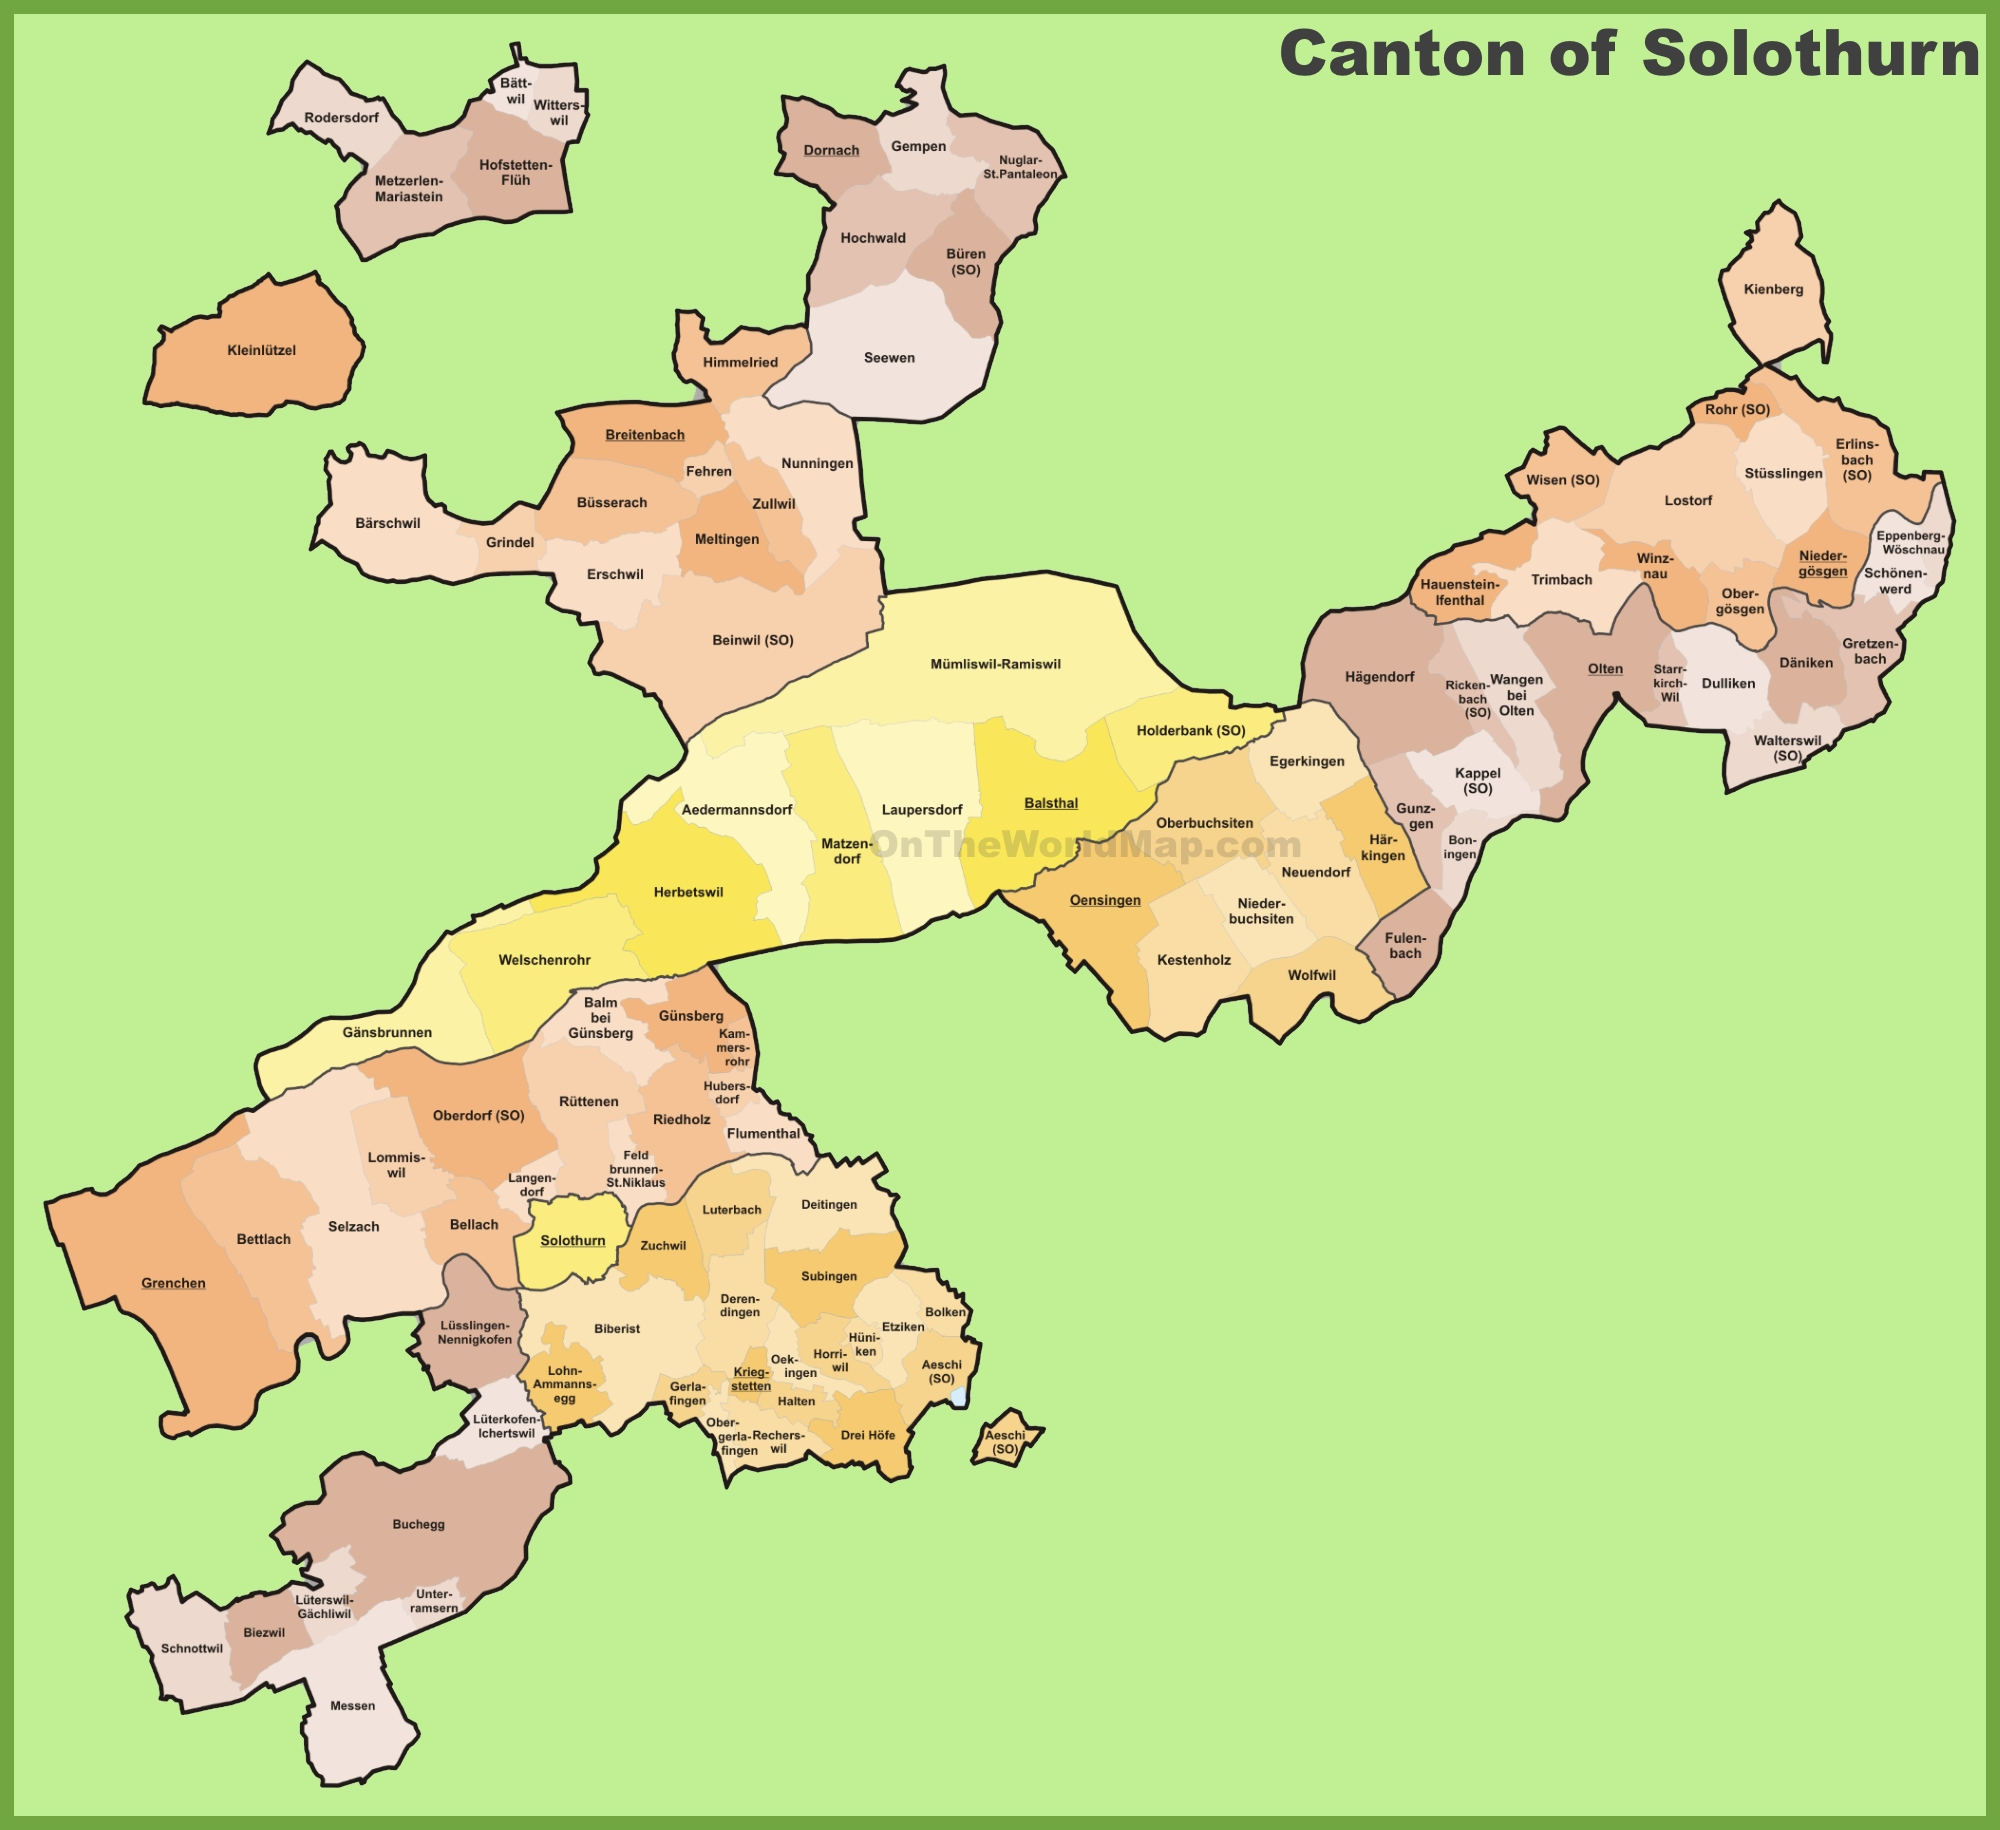 Canton of Solothurn municipality map